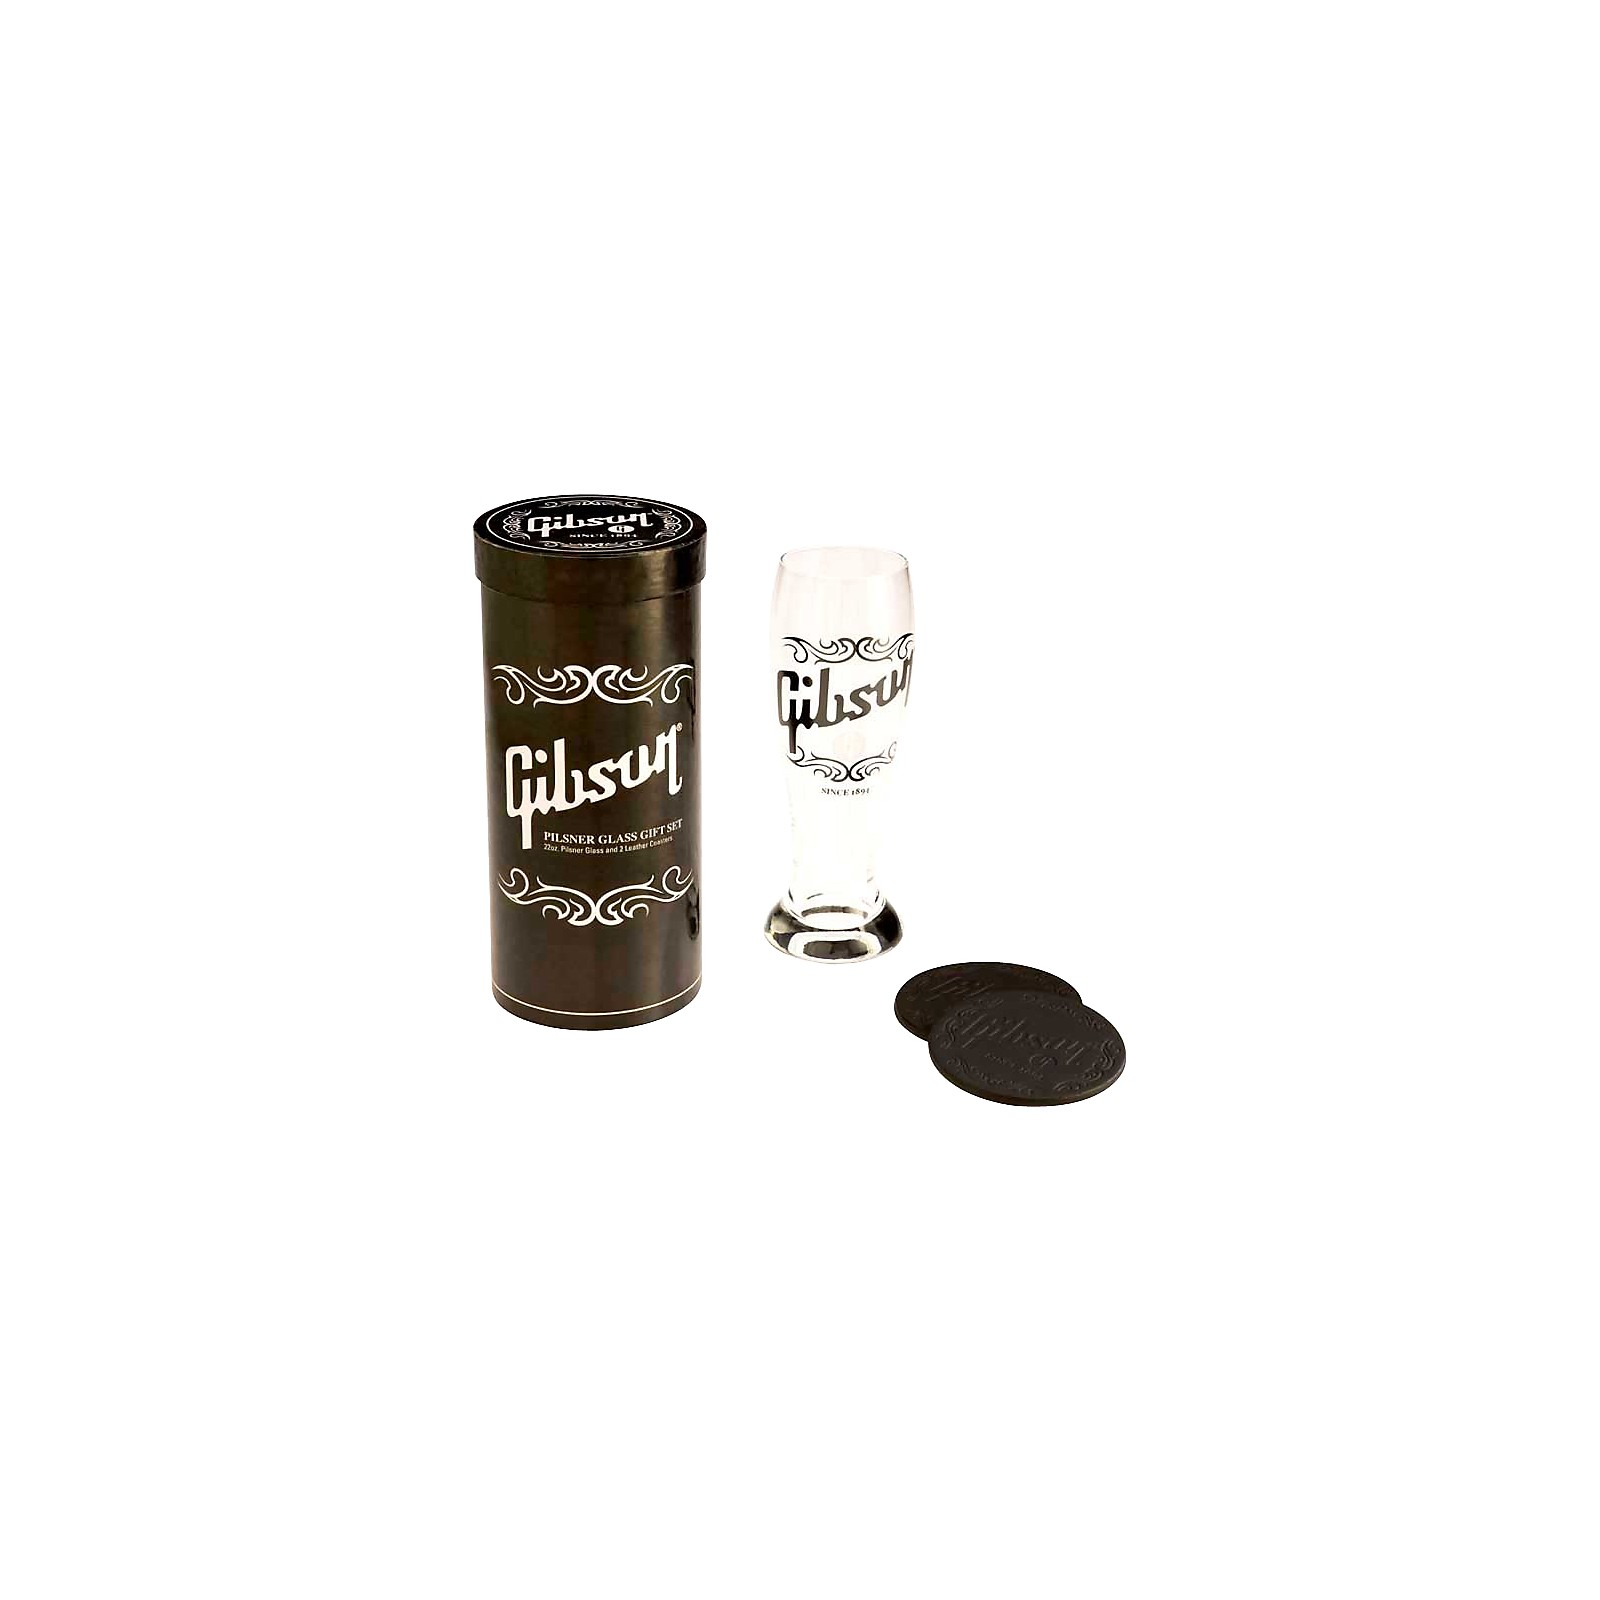 Gibson Pilsner Glass Gift Set